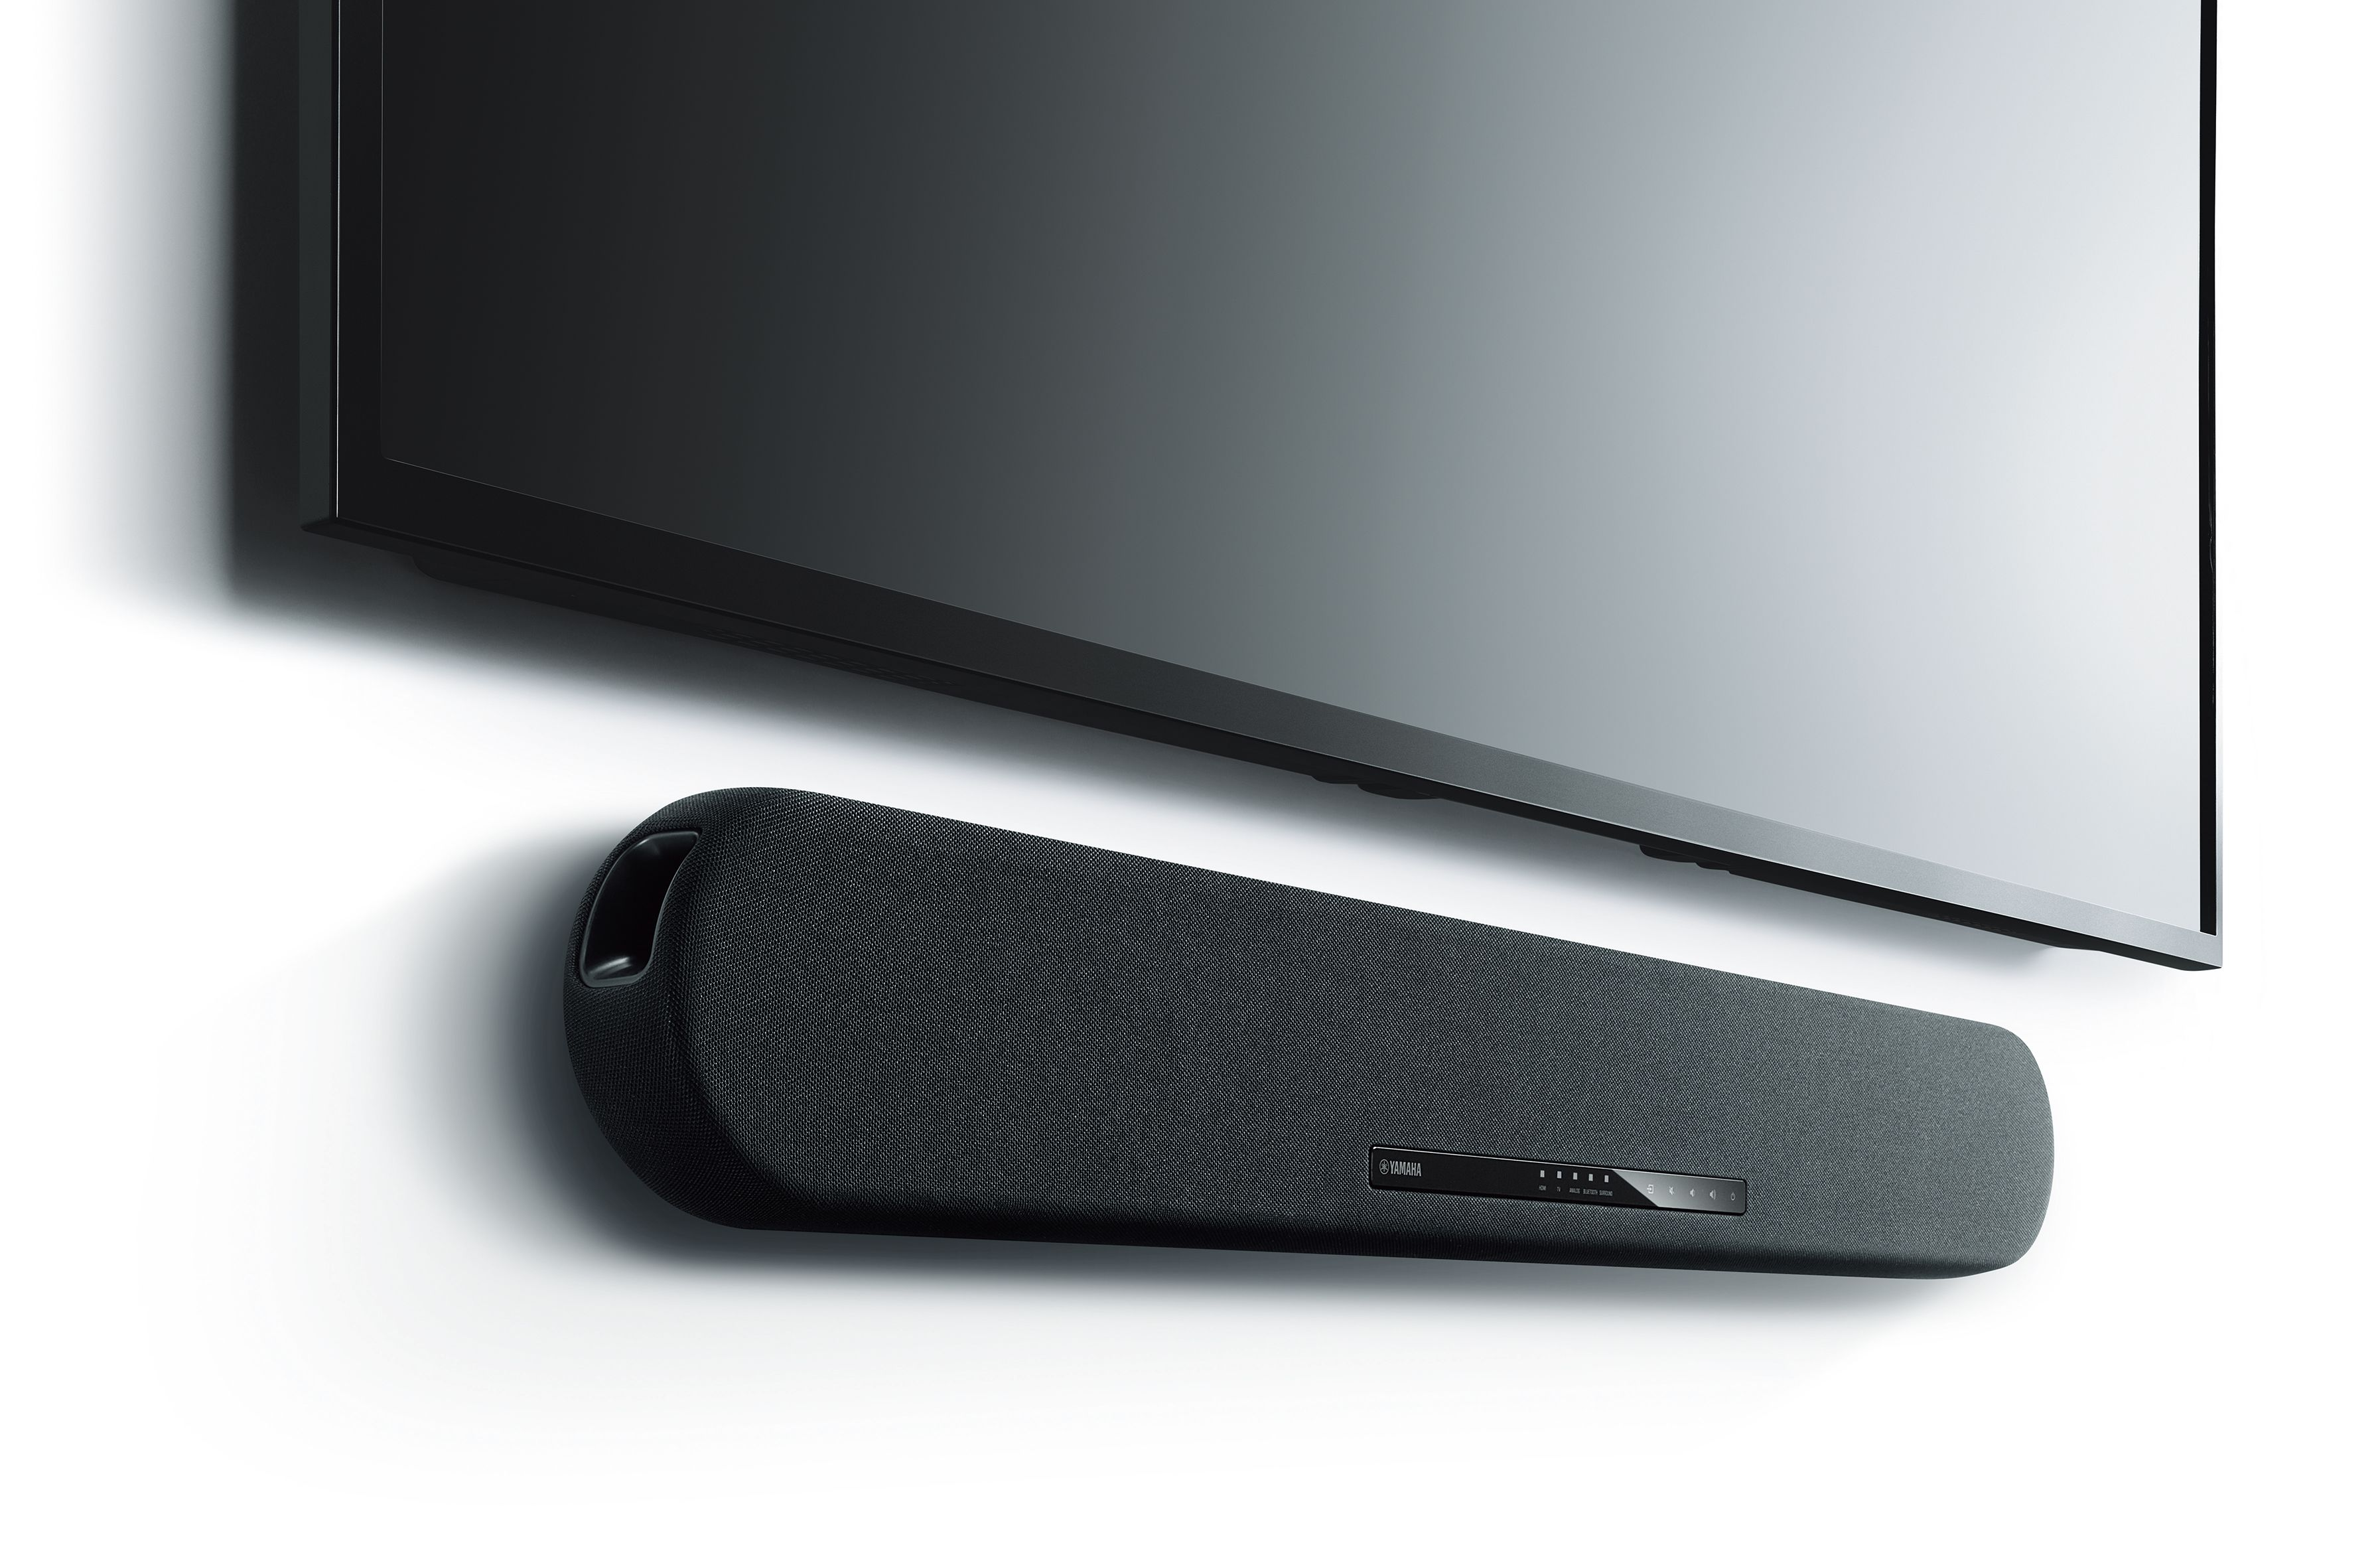 ATS-1080 - Overview - Sound Bars - Audio & Visual - Products